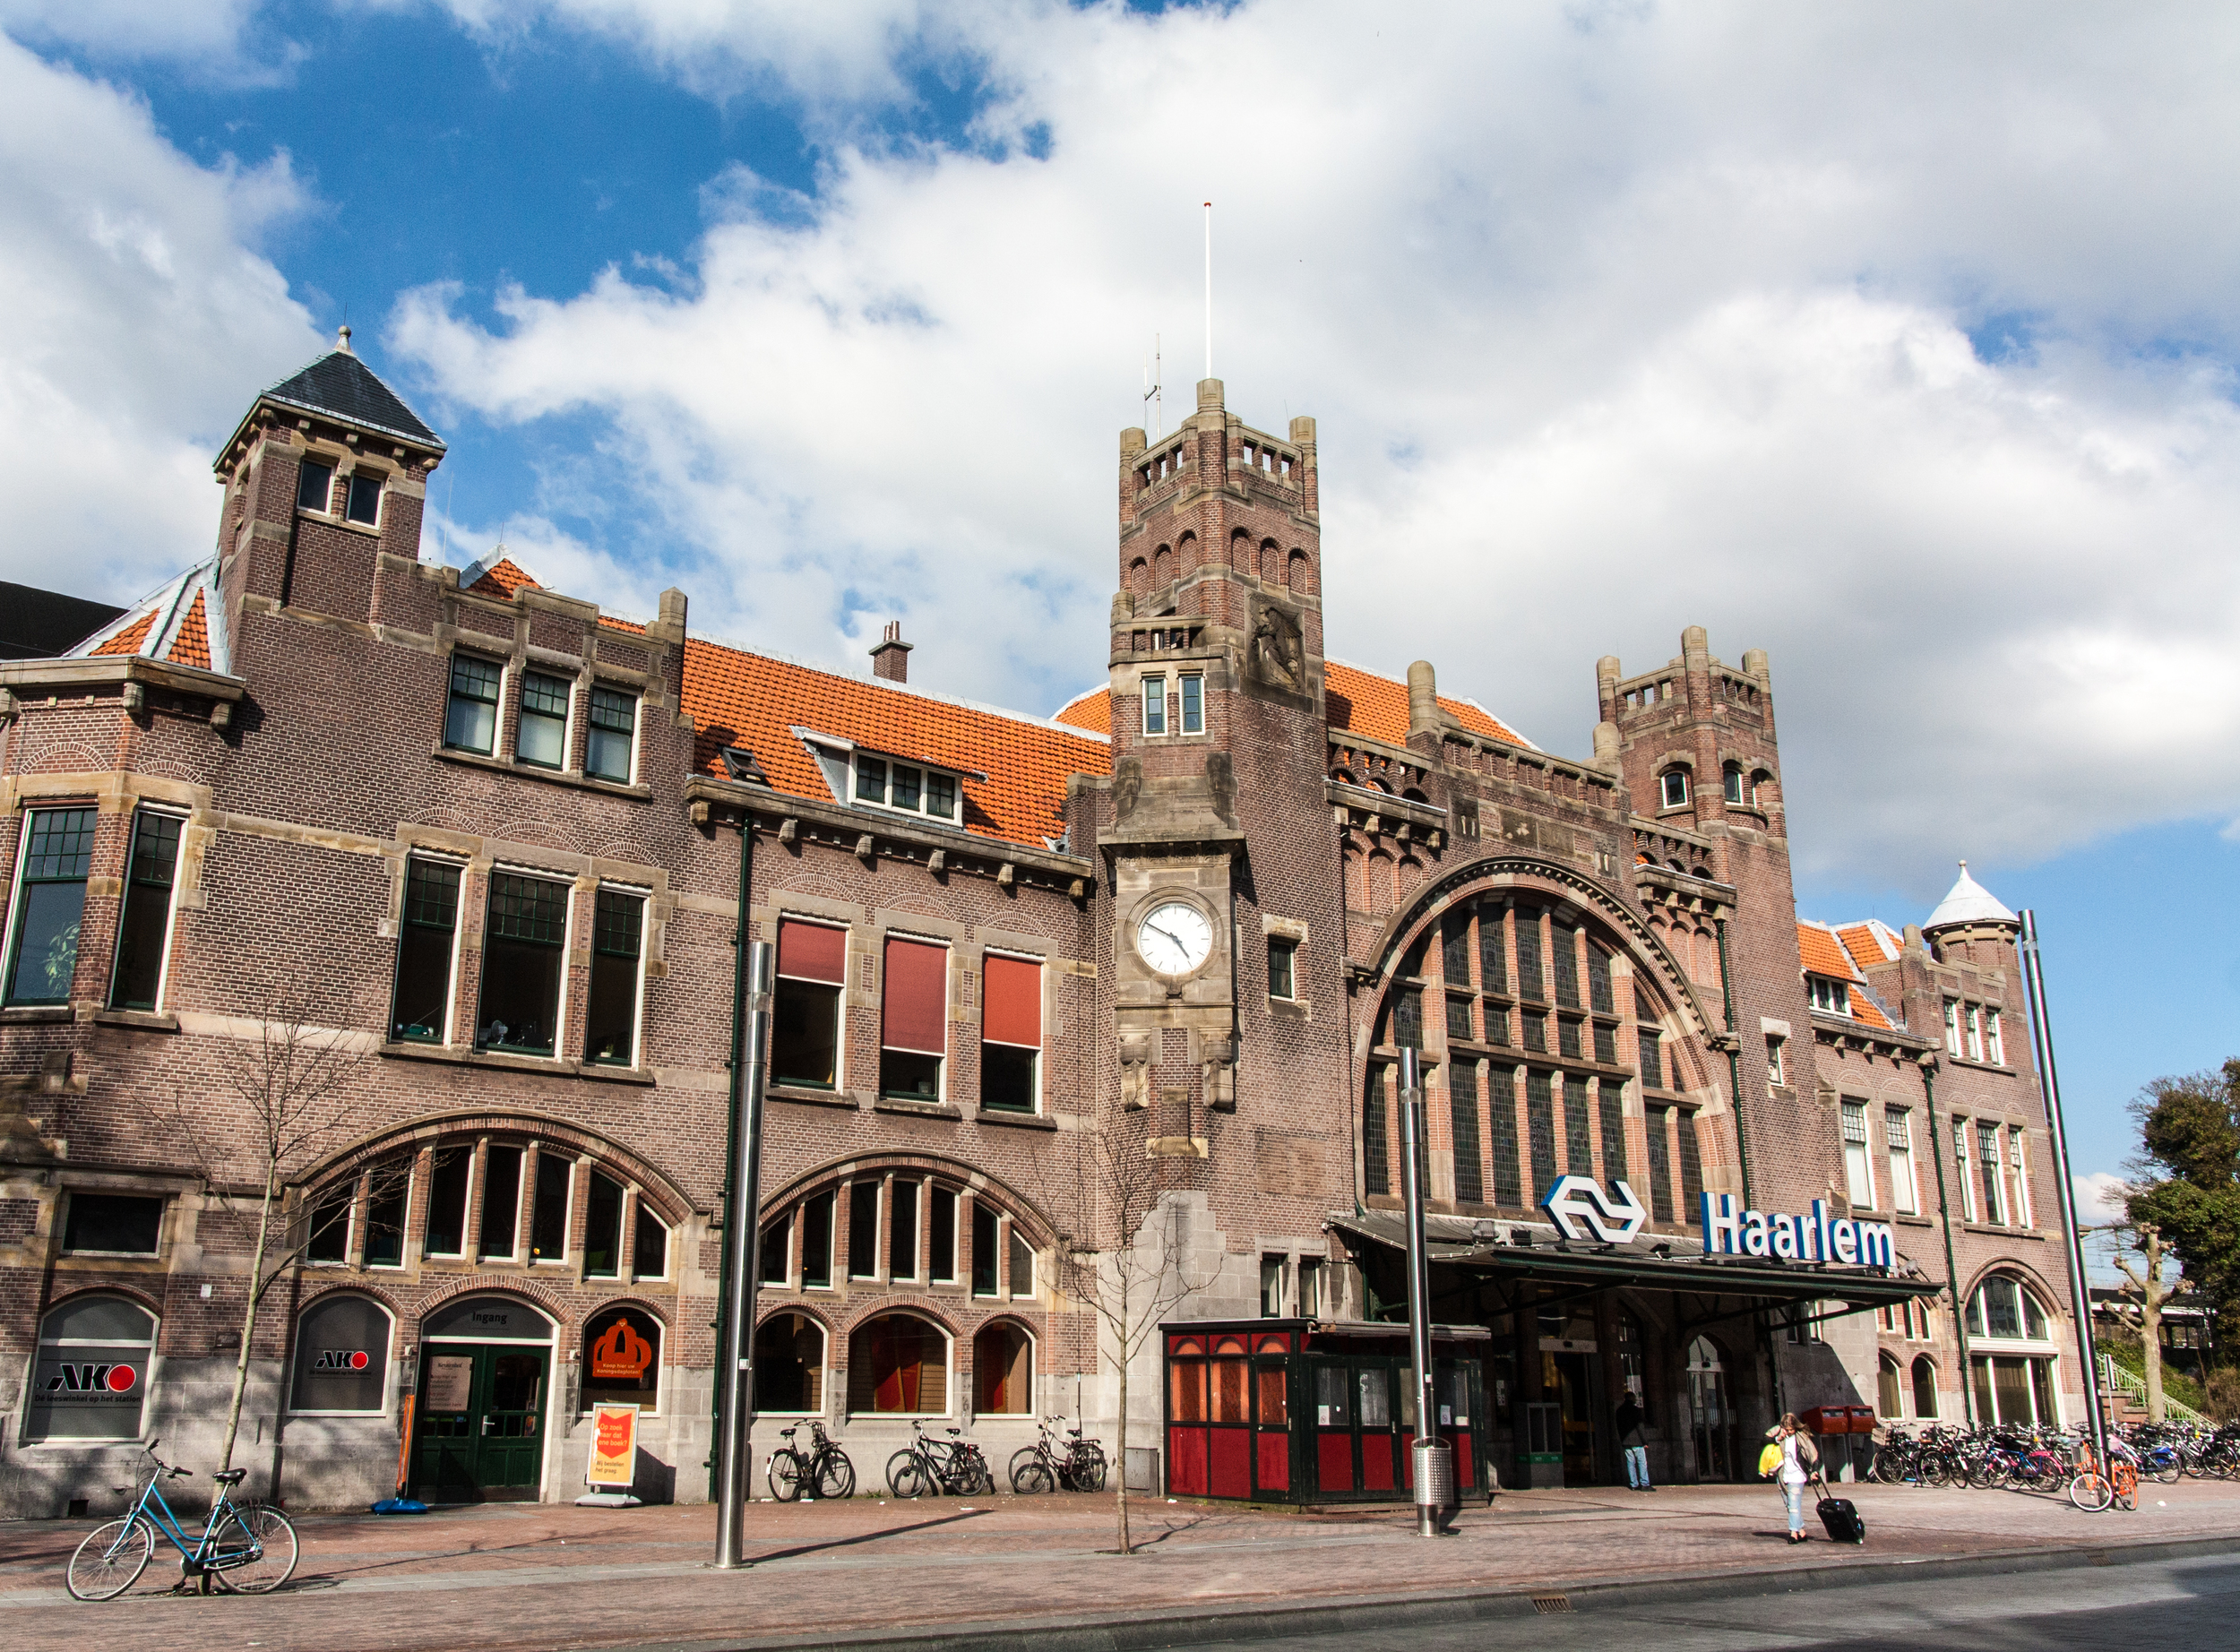 Haarlem's restored art deco train station is a beautiful and stress-freeplace to start any journey.